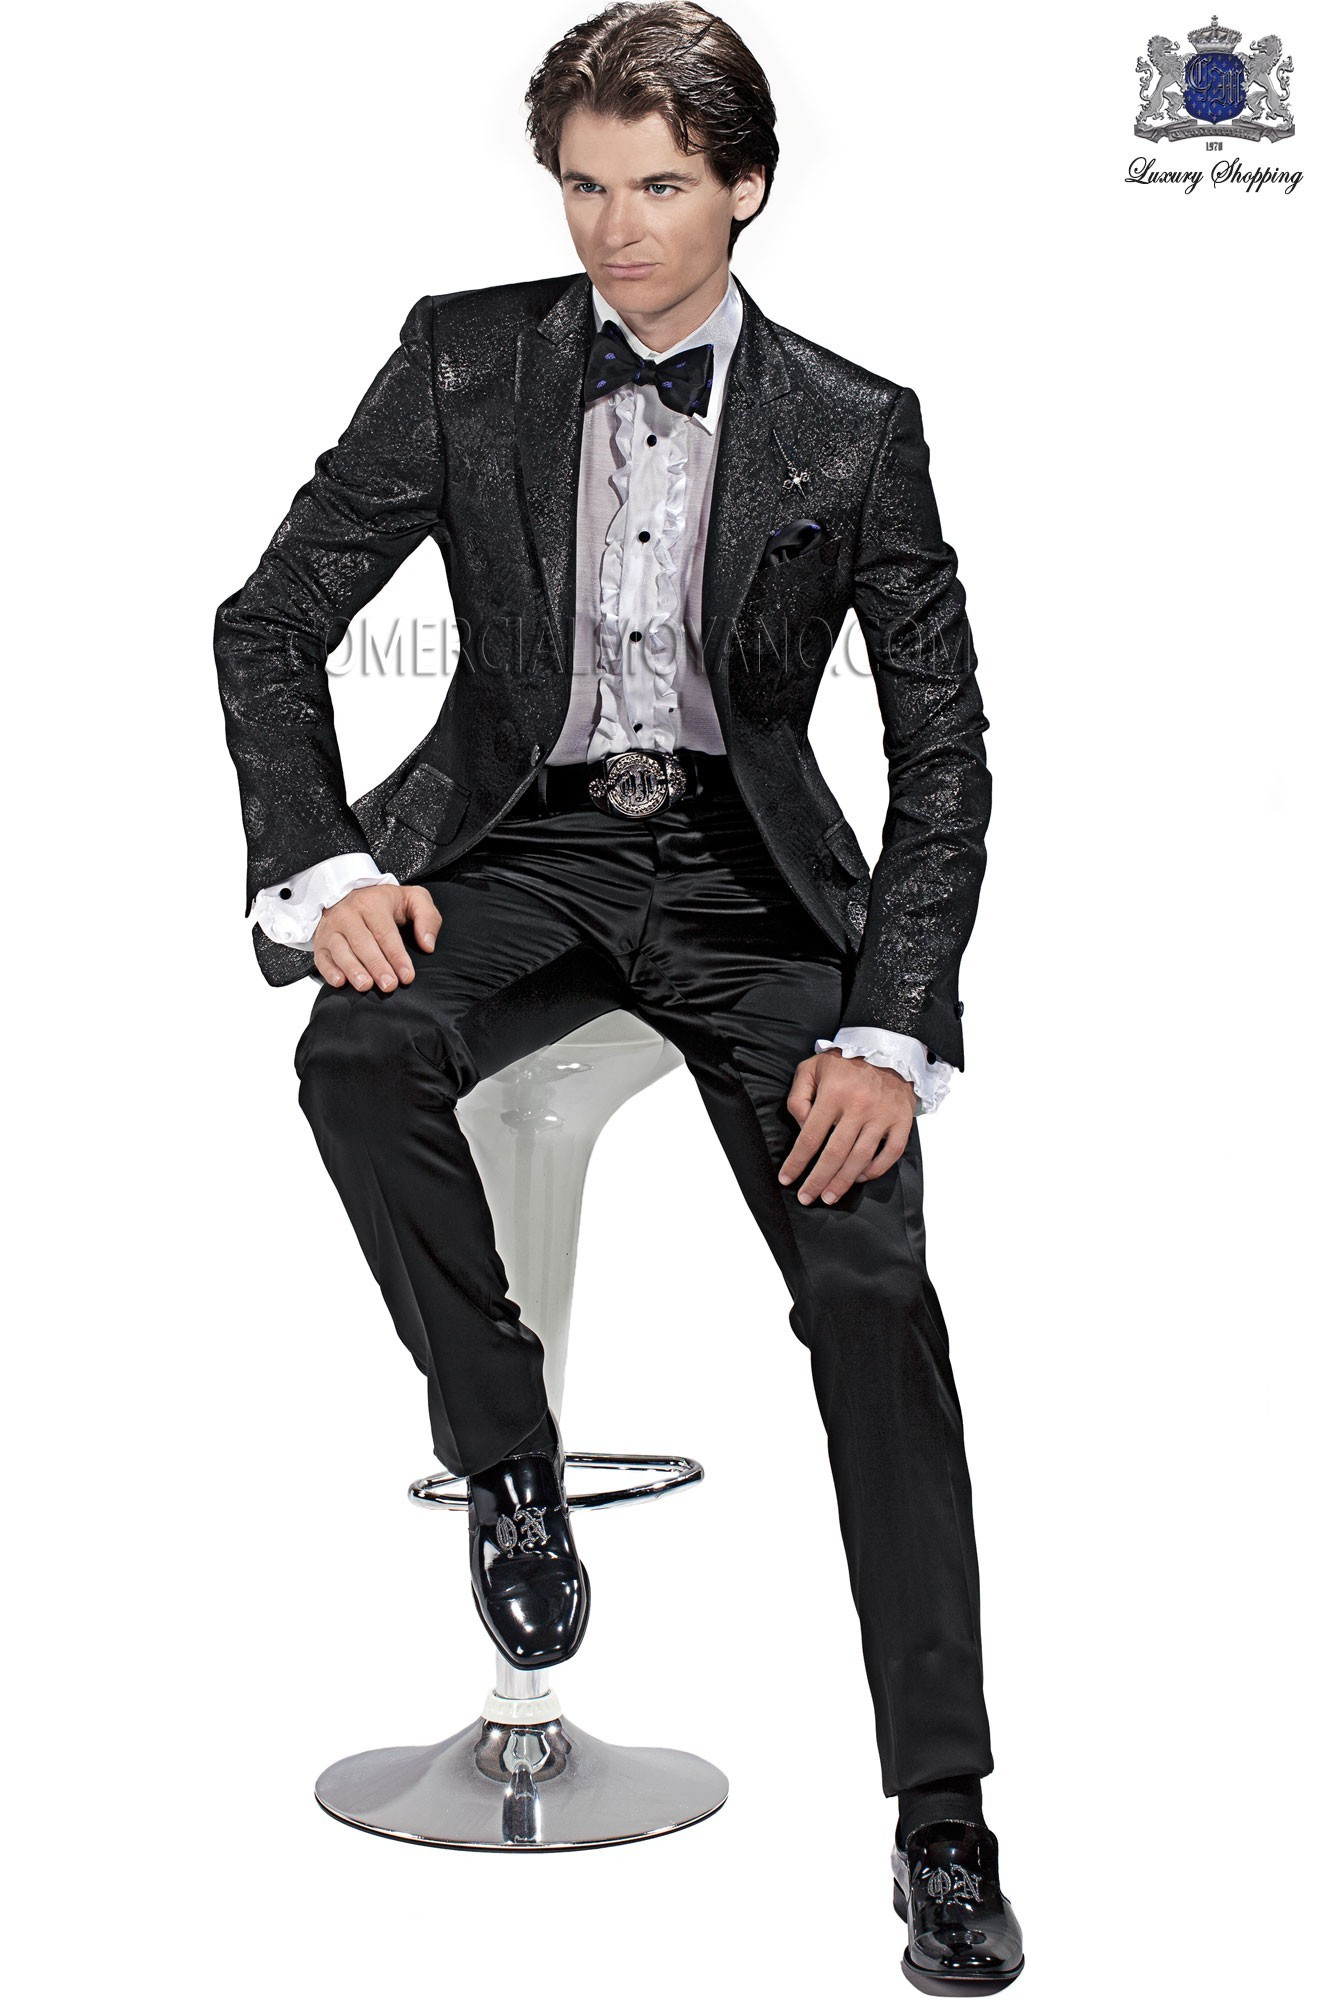 Emotion black men wedding suit model 60435 Ottavio Nuccio Gala